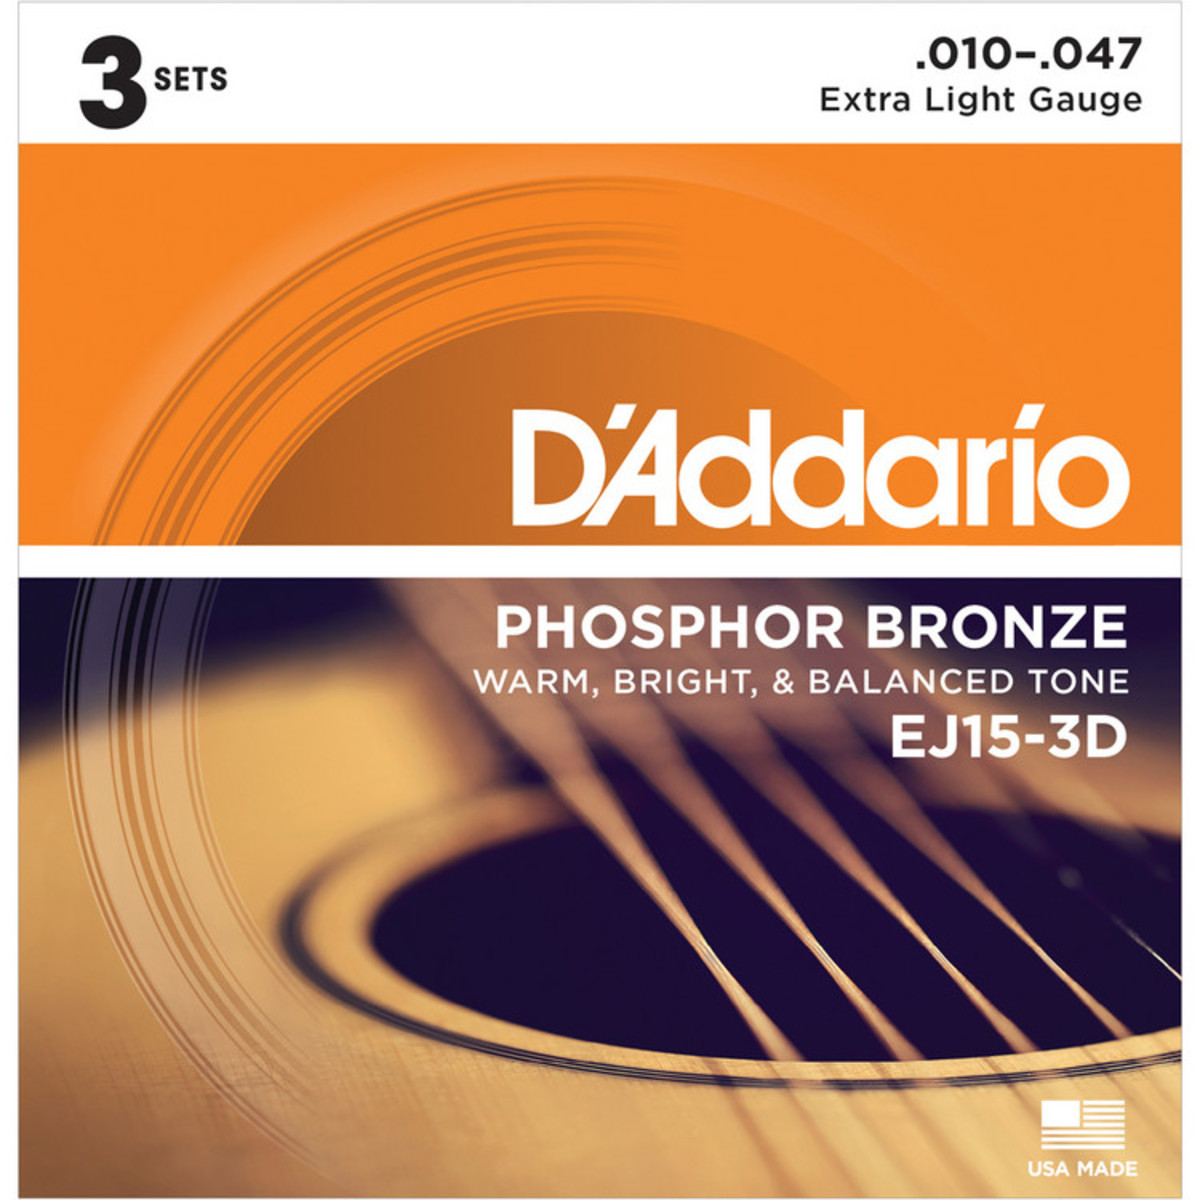 Image of DAddario EJ15 Phosphor Bronze Extra Light 10-47 x 3 Pack